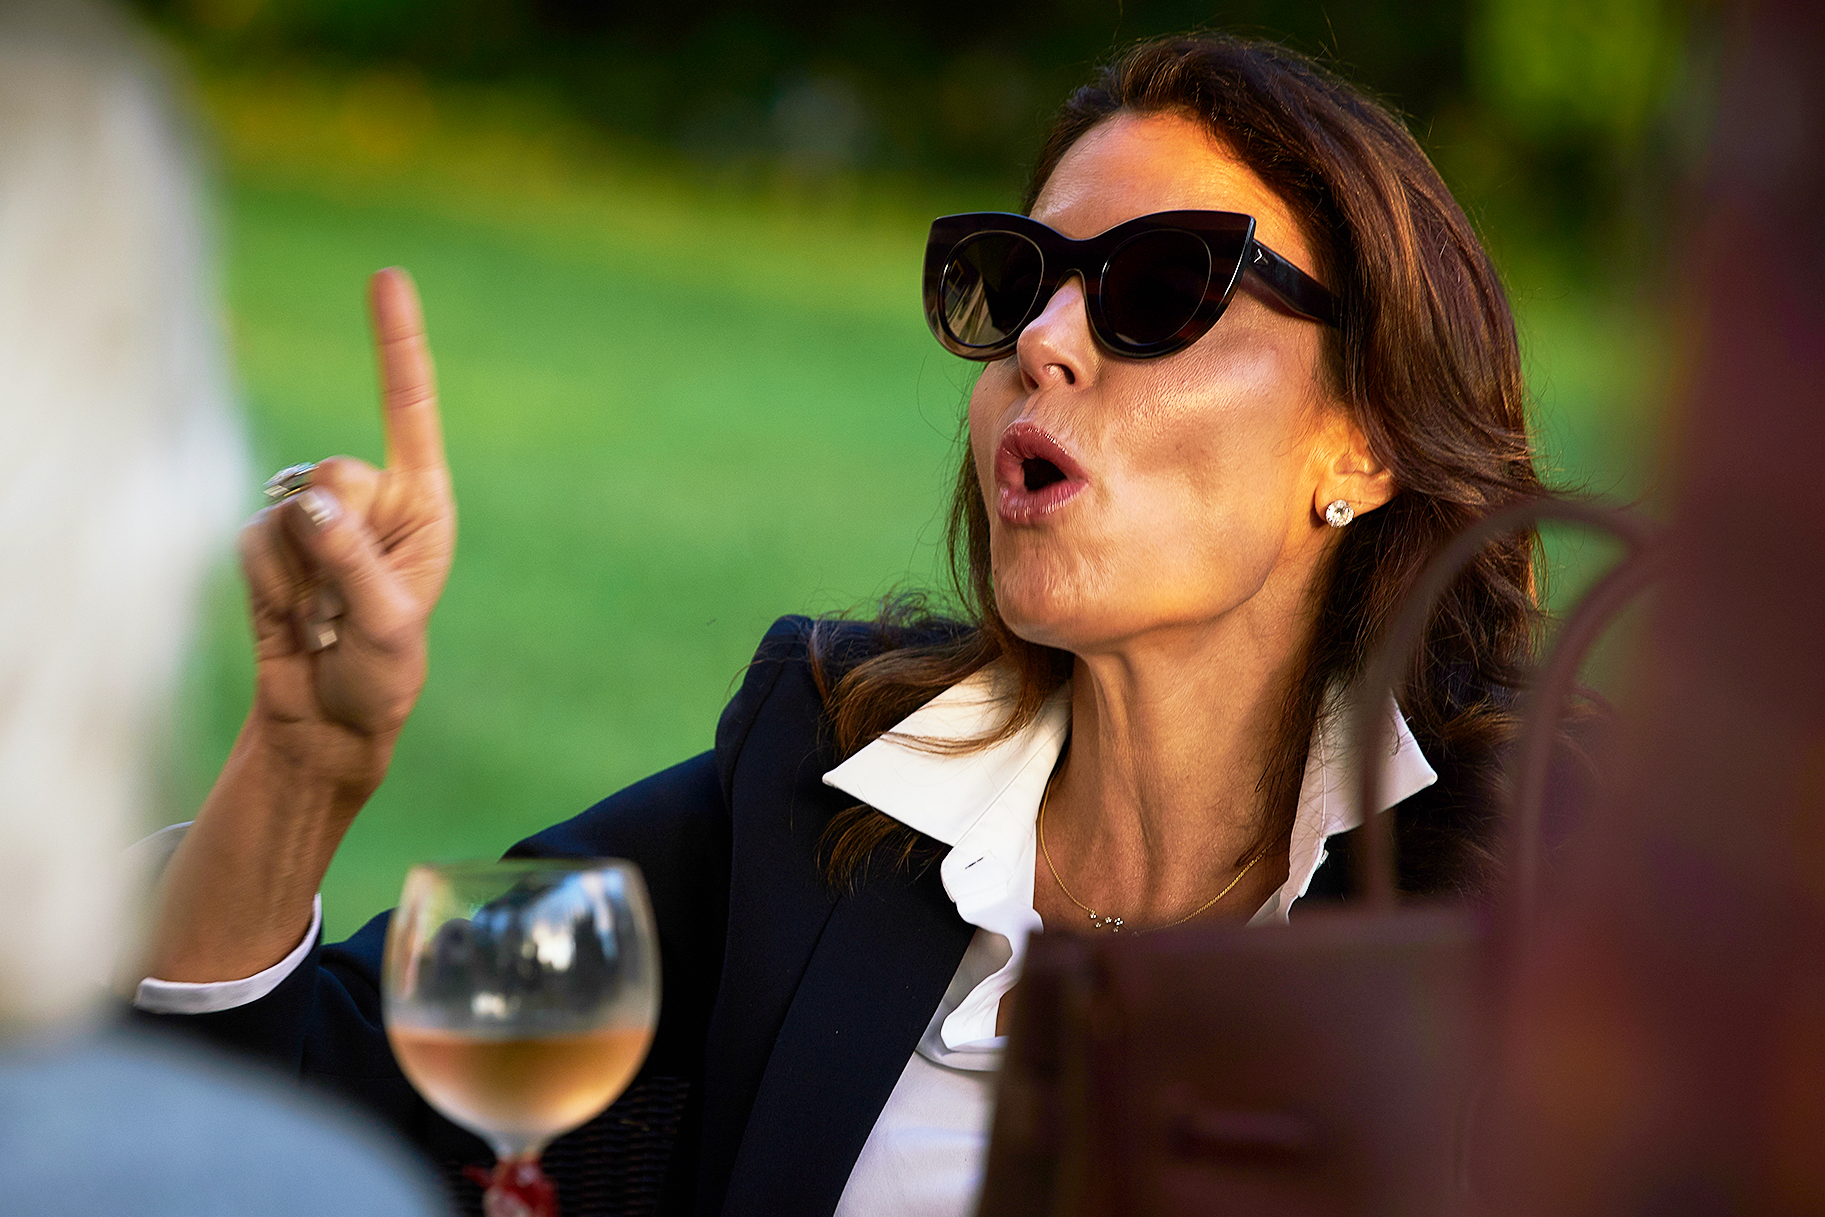 Bethenny Frankel in The Real Housewives of New York City Season 11